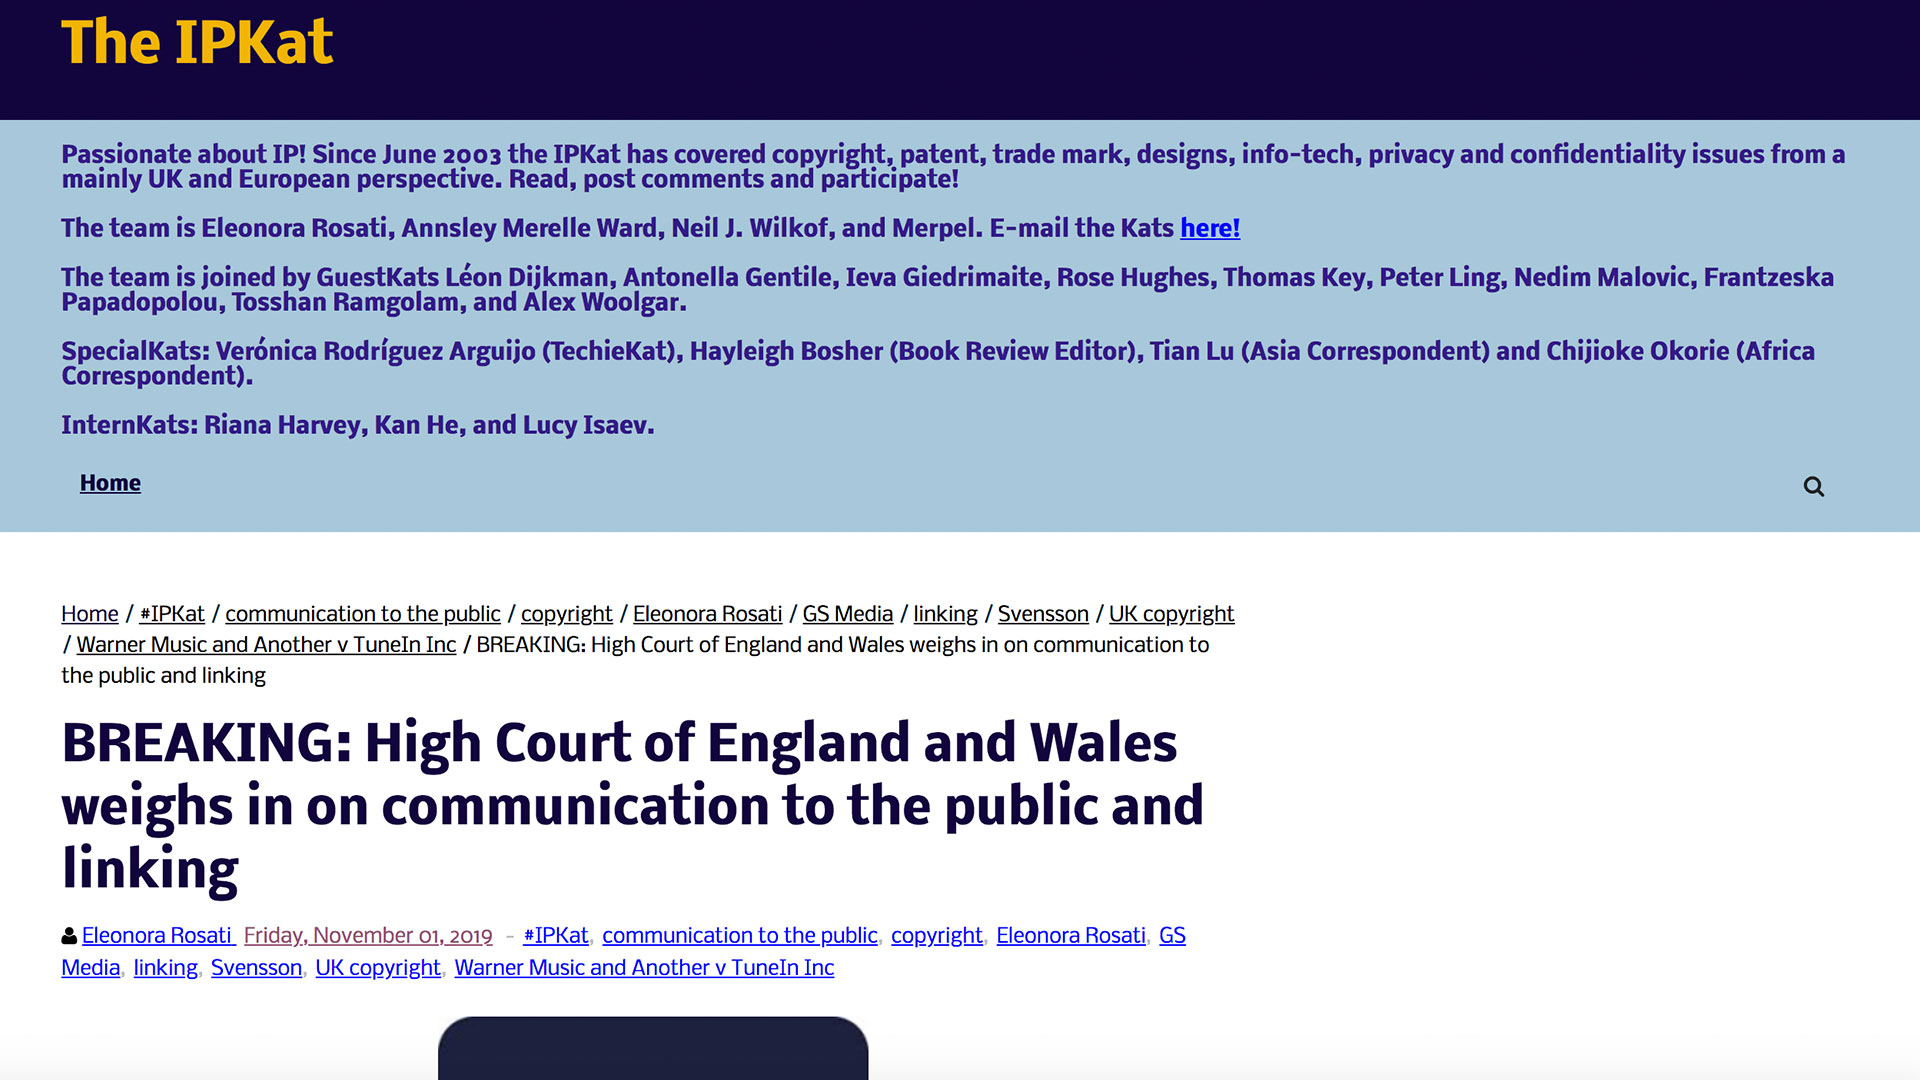 Fairness Rocks News BREAKING: High Court of England and Wales weighs in on communication to the public and linking